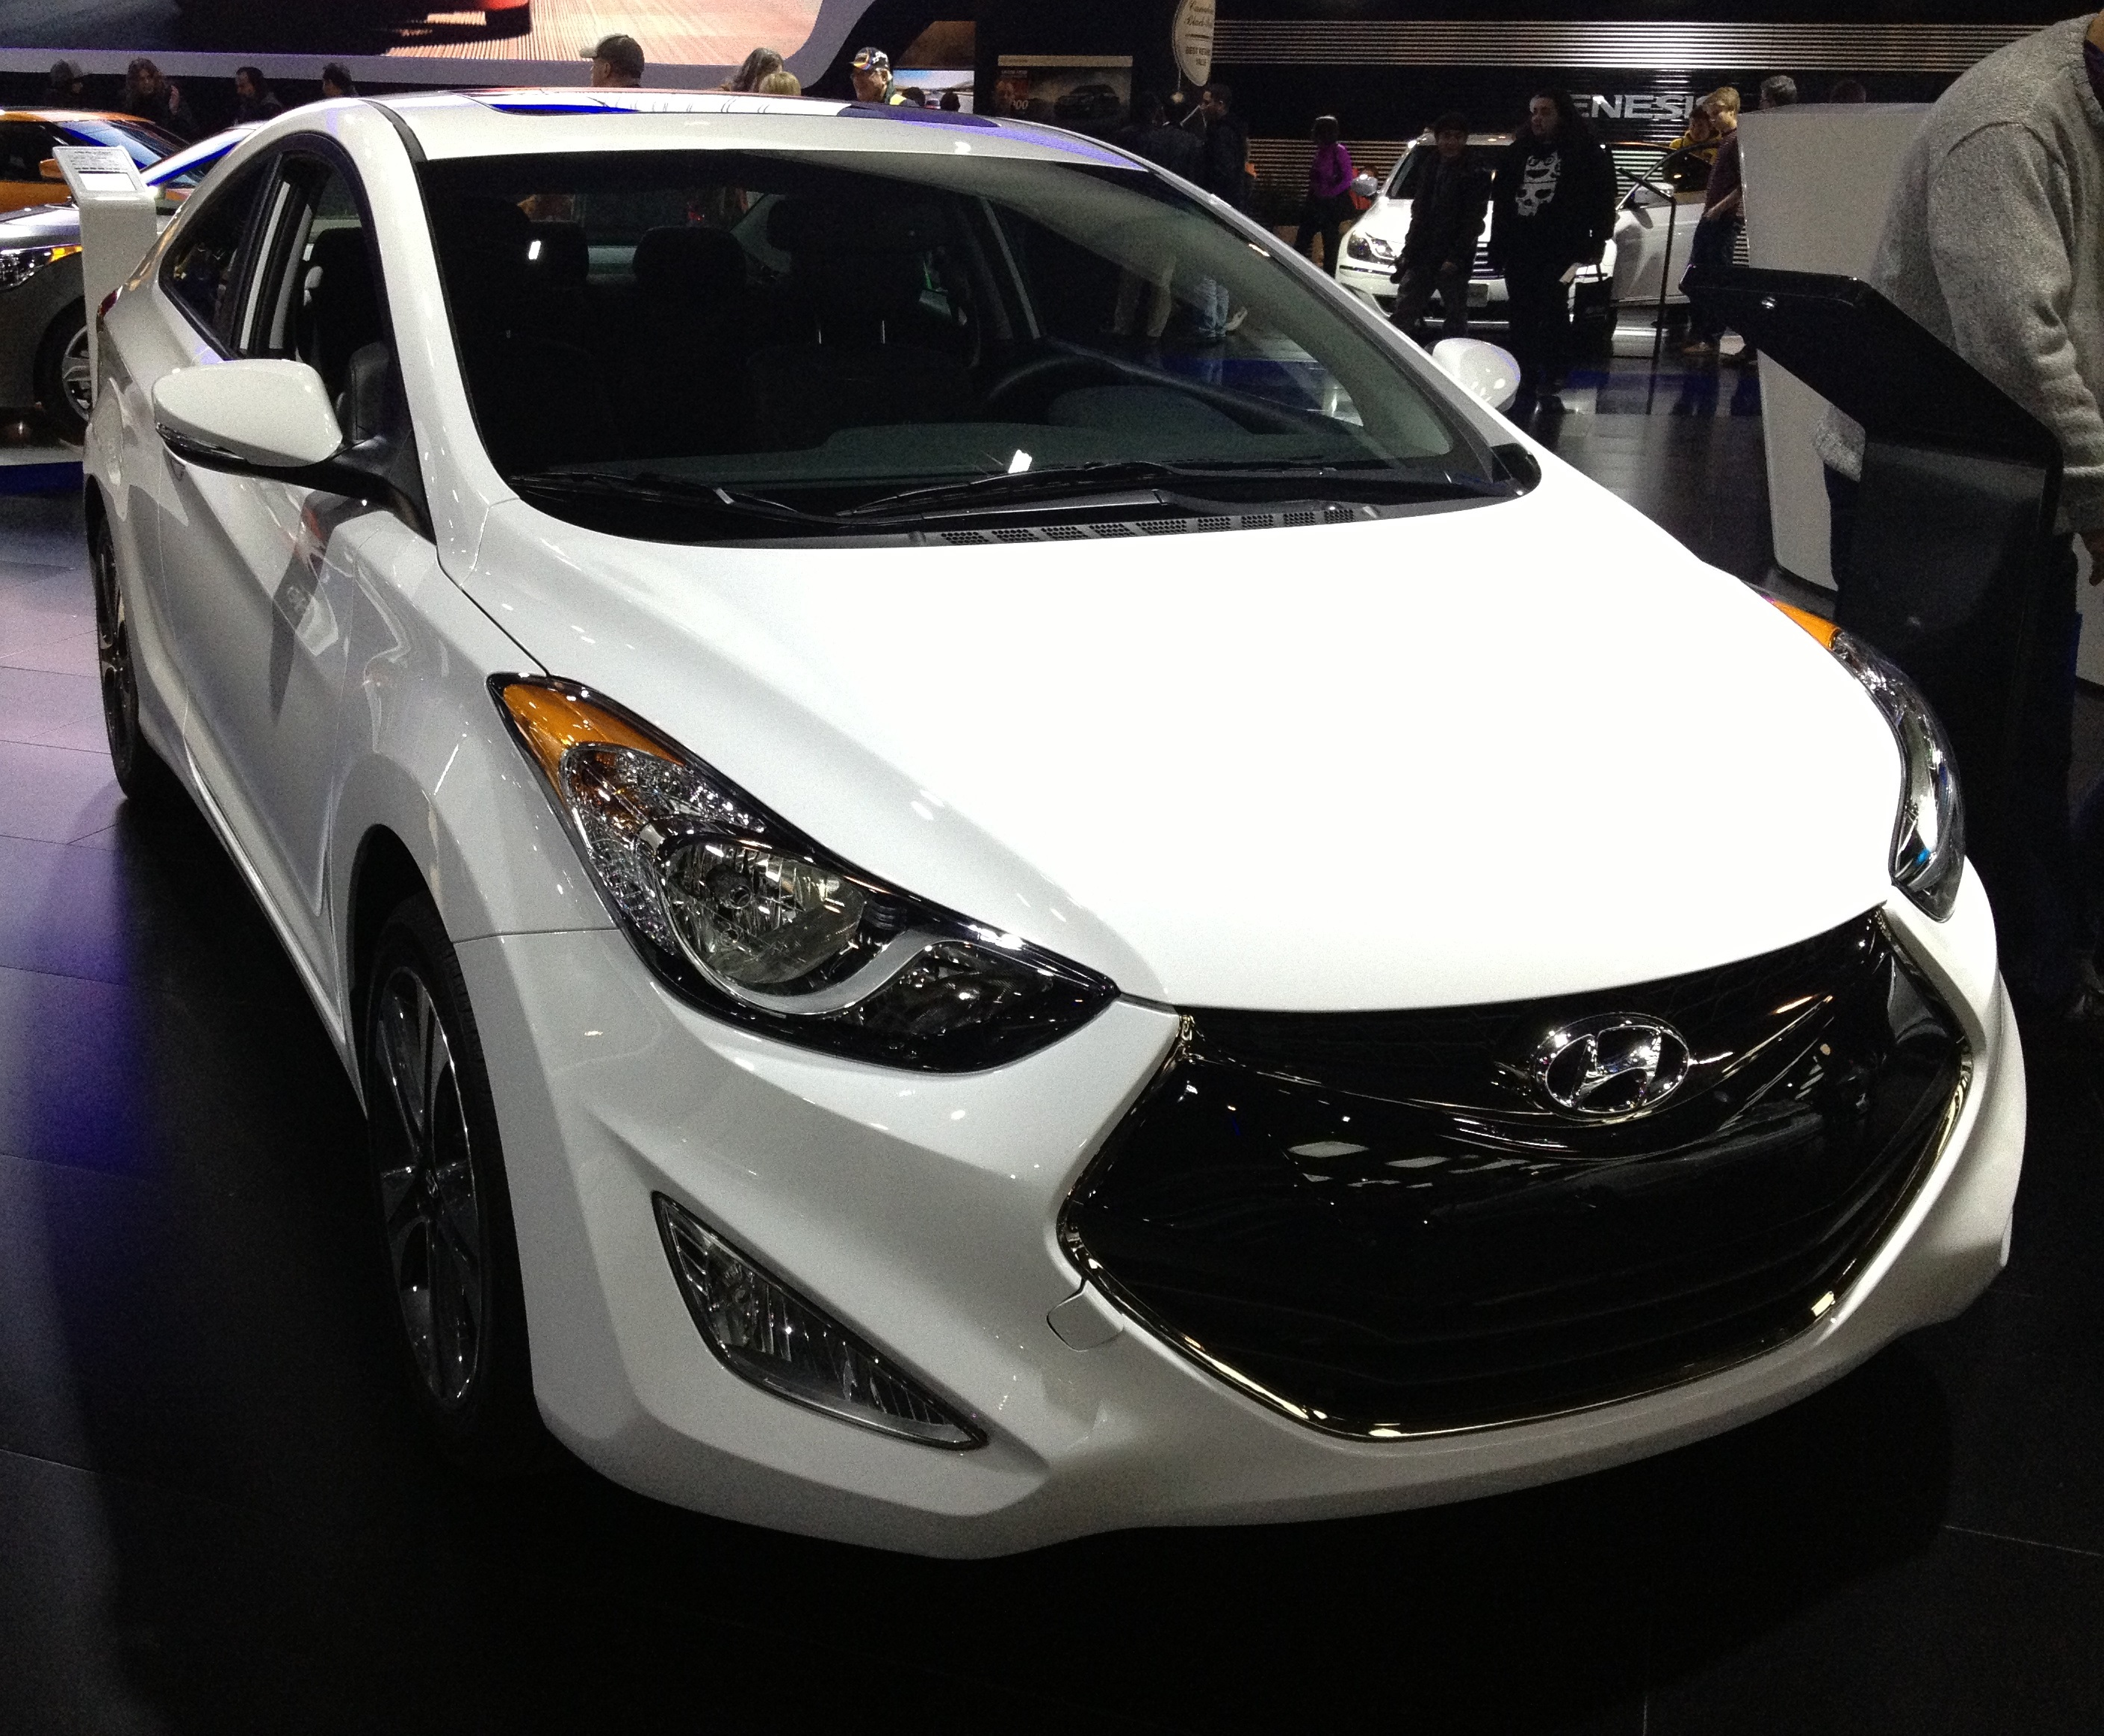 Hyundai 2014 Accent 2014 Hyundai Accent Image 15 Hyundai Accent 2017 Prices And Specifications